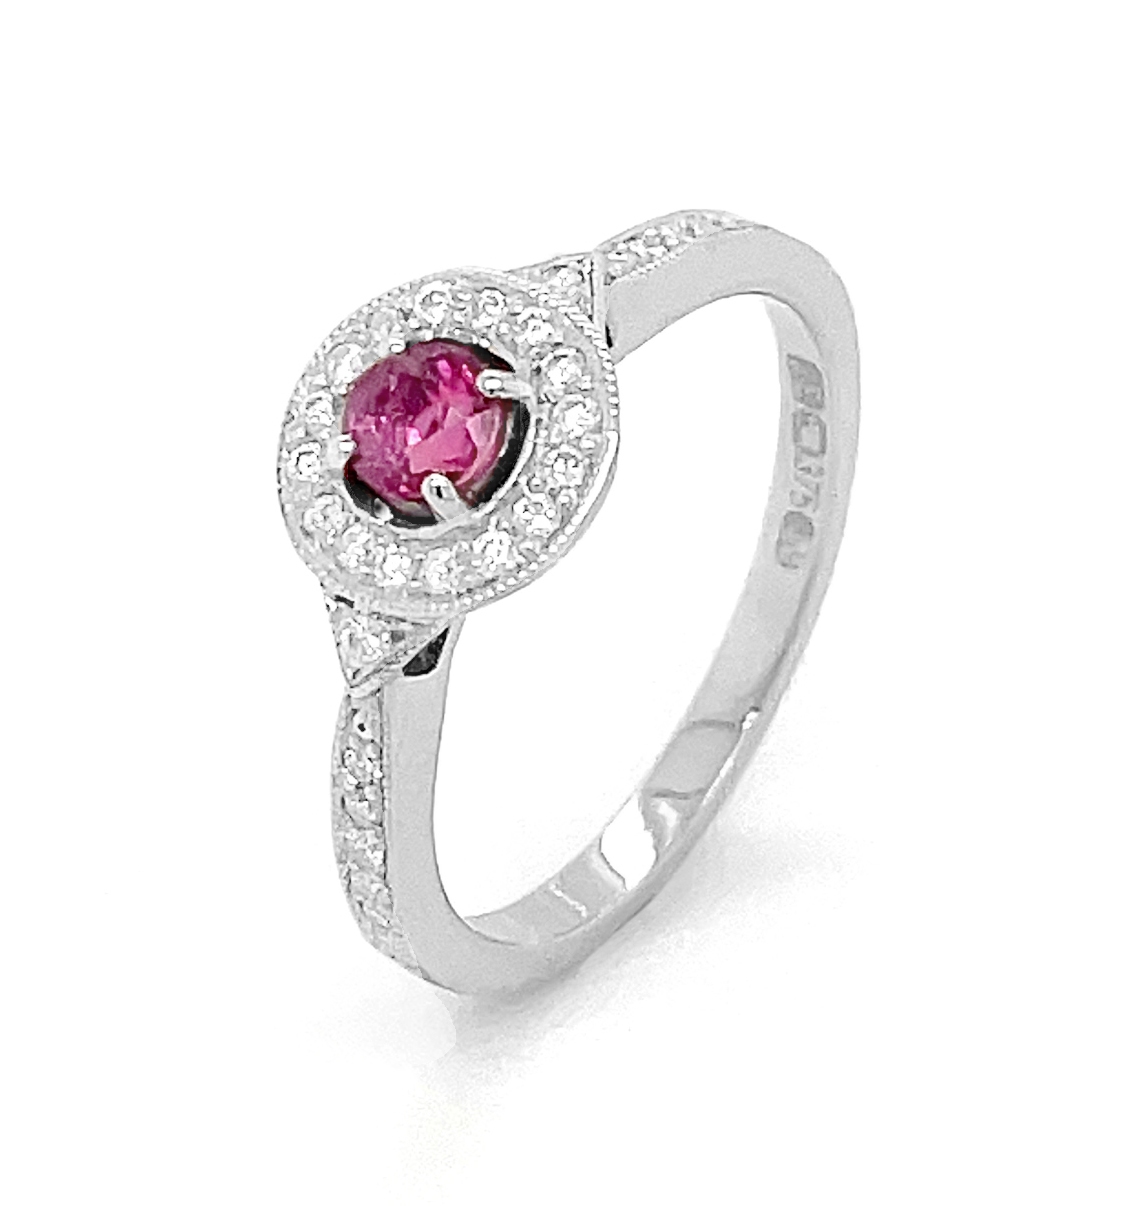 Ruby And Diamond Cluster Ring In 9k White Gold